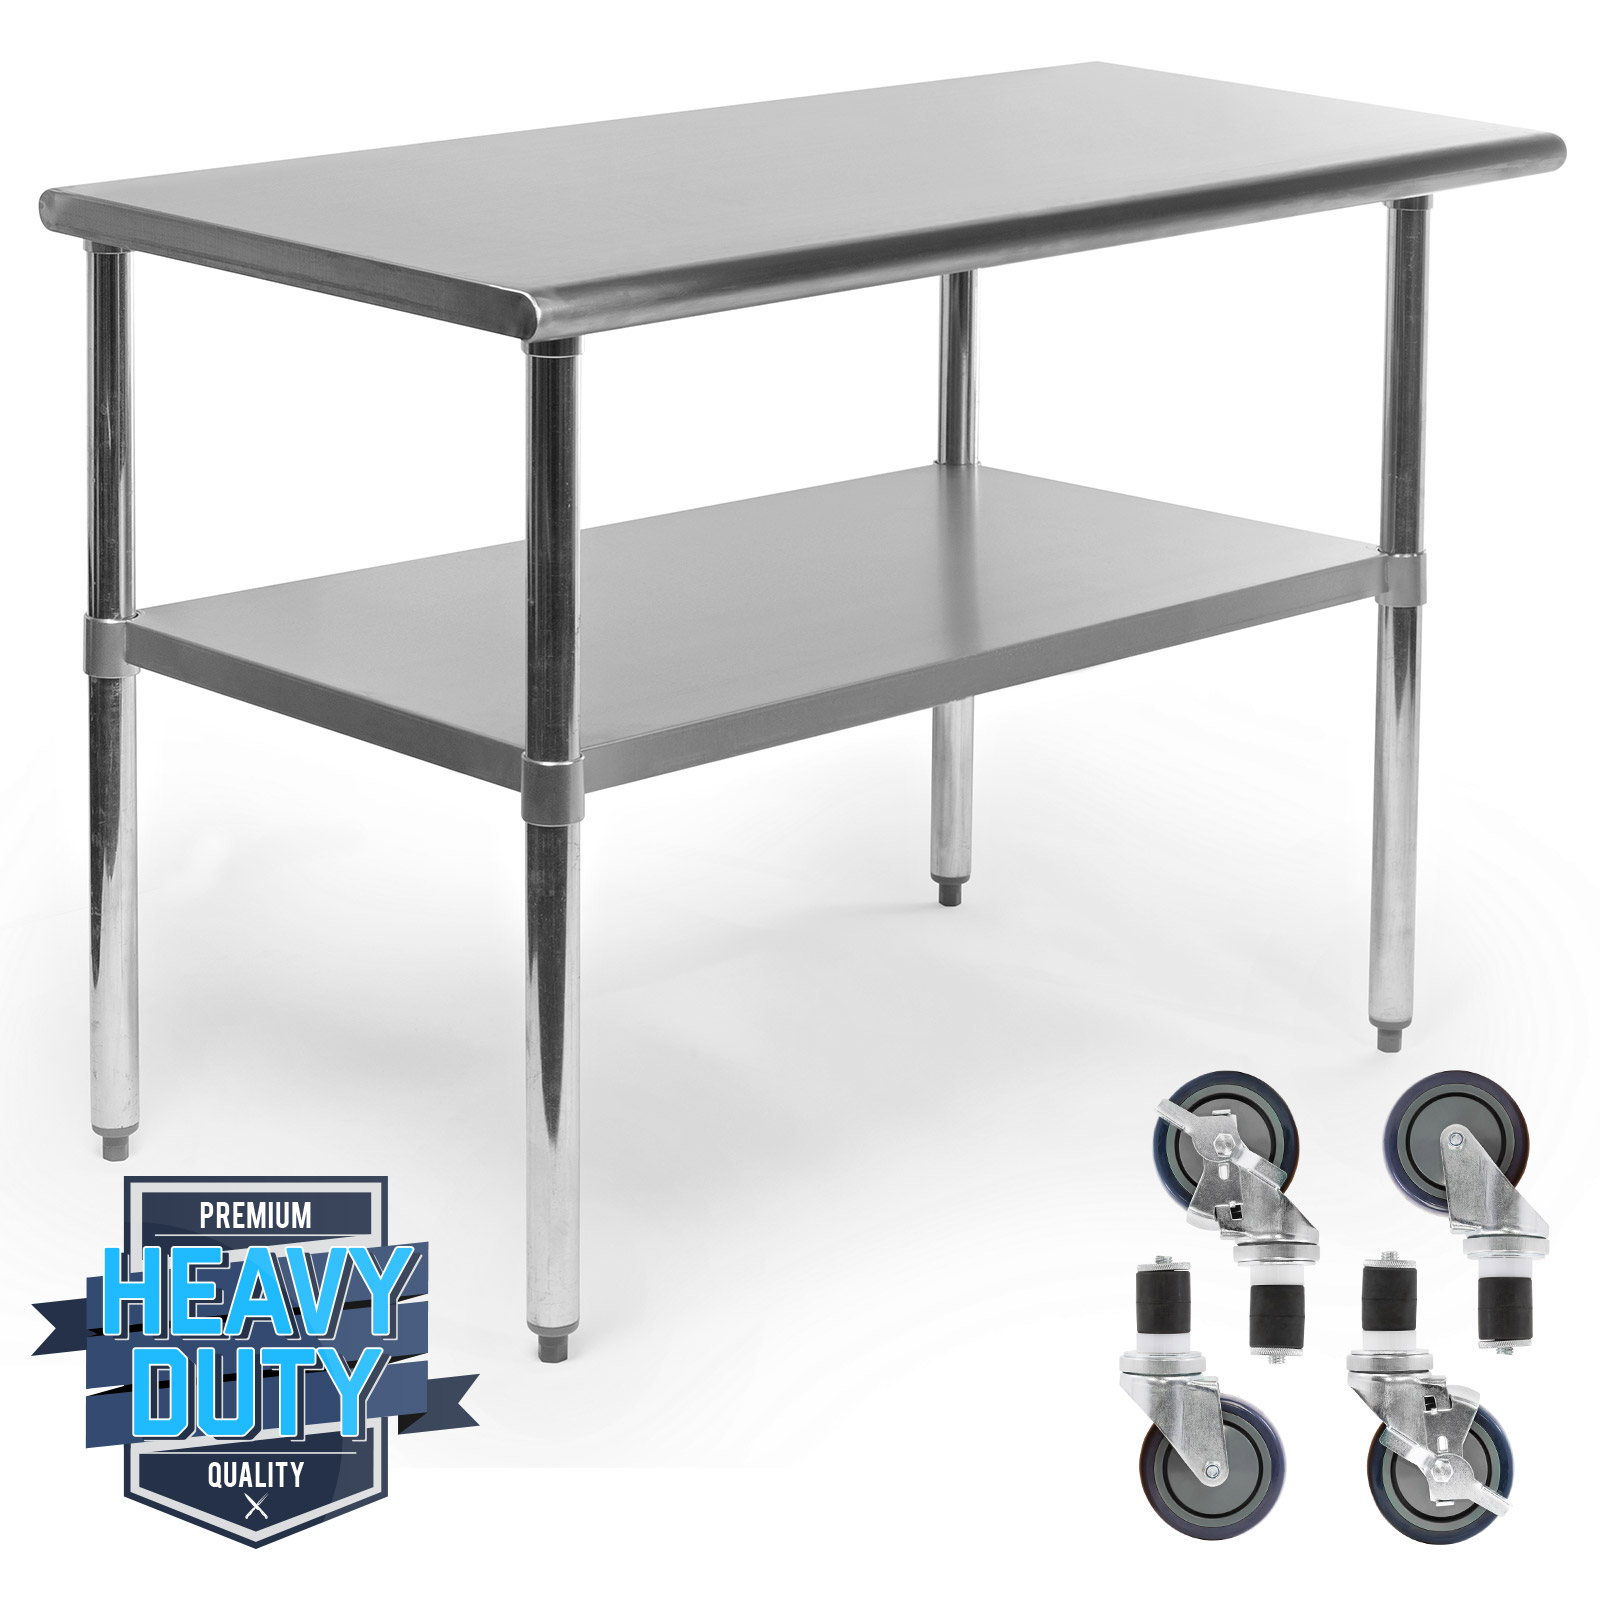 Stainless Steel Commercial Kitchen Work Food Prep Table w/ 4 Casters ...